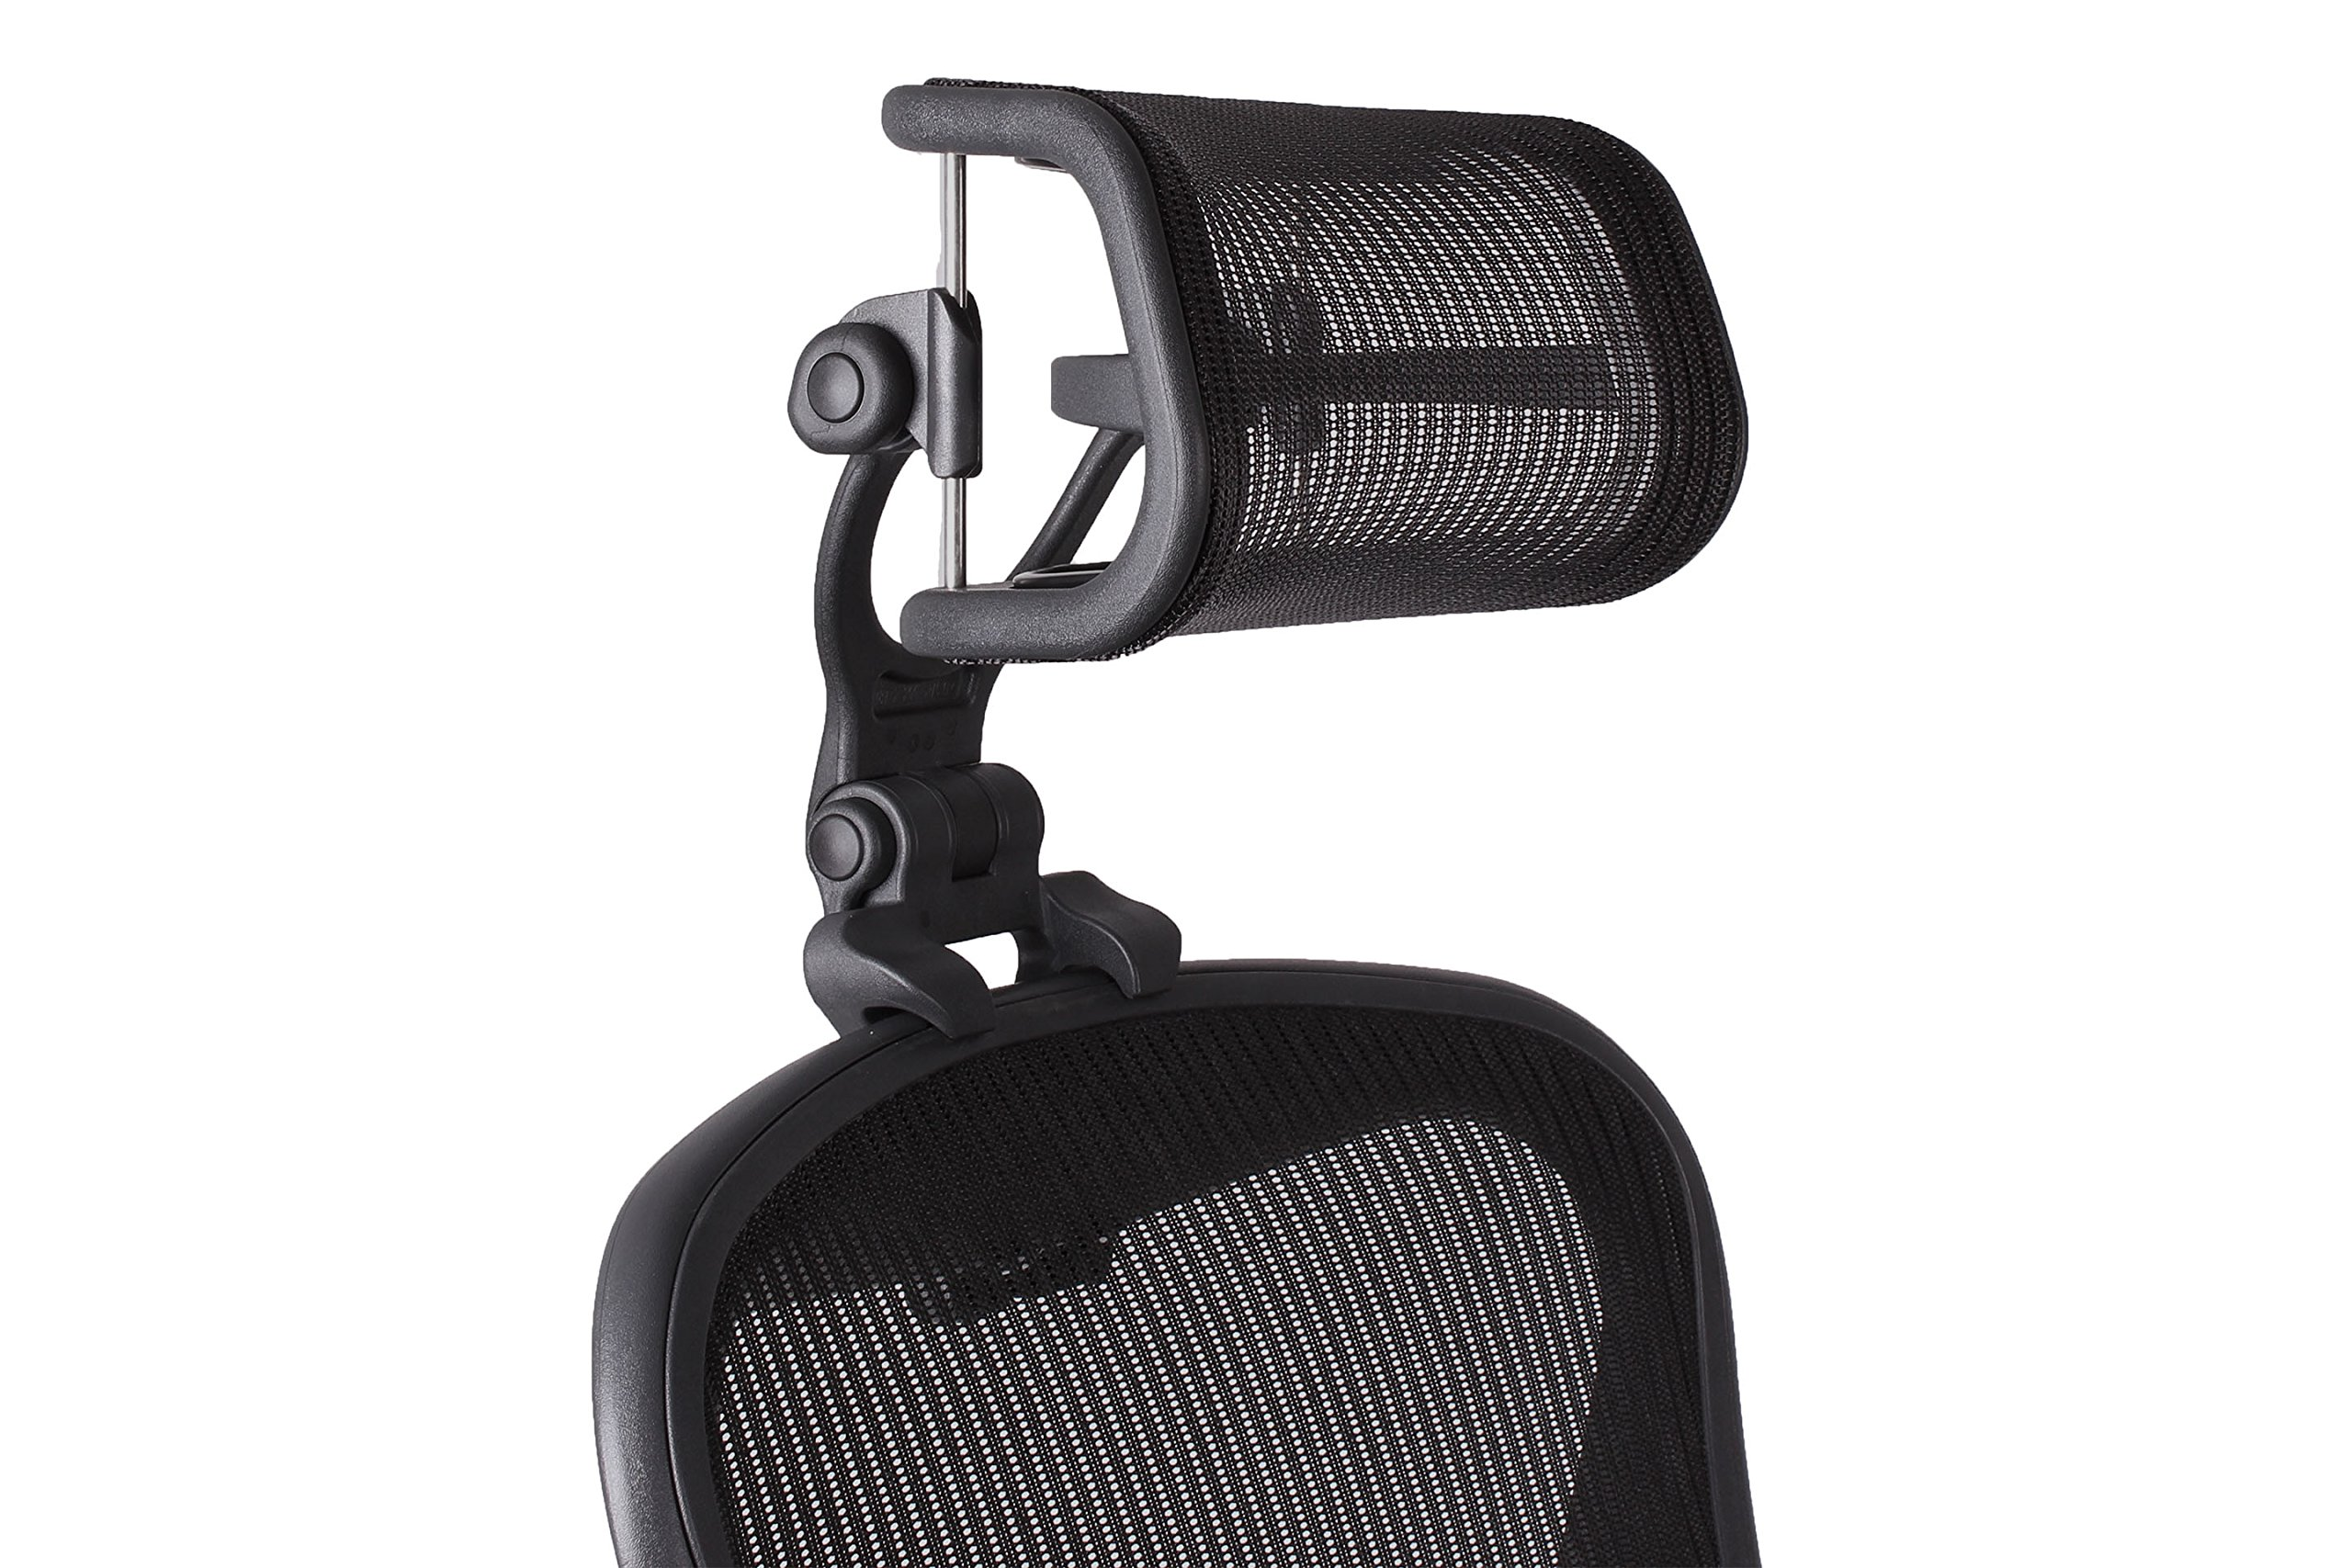 The Original Headrest for The Herman Miller Aeron Chair H4 Carbon | Colors and Mesh Match Classic Aeron Chair 2016 and Earlier Models by Engineered Now